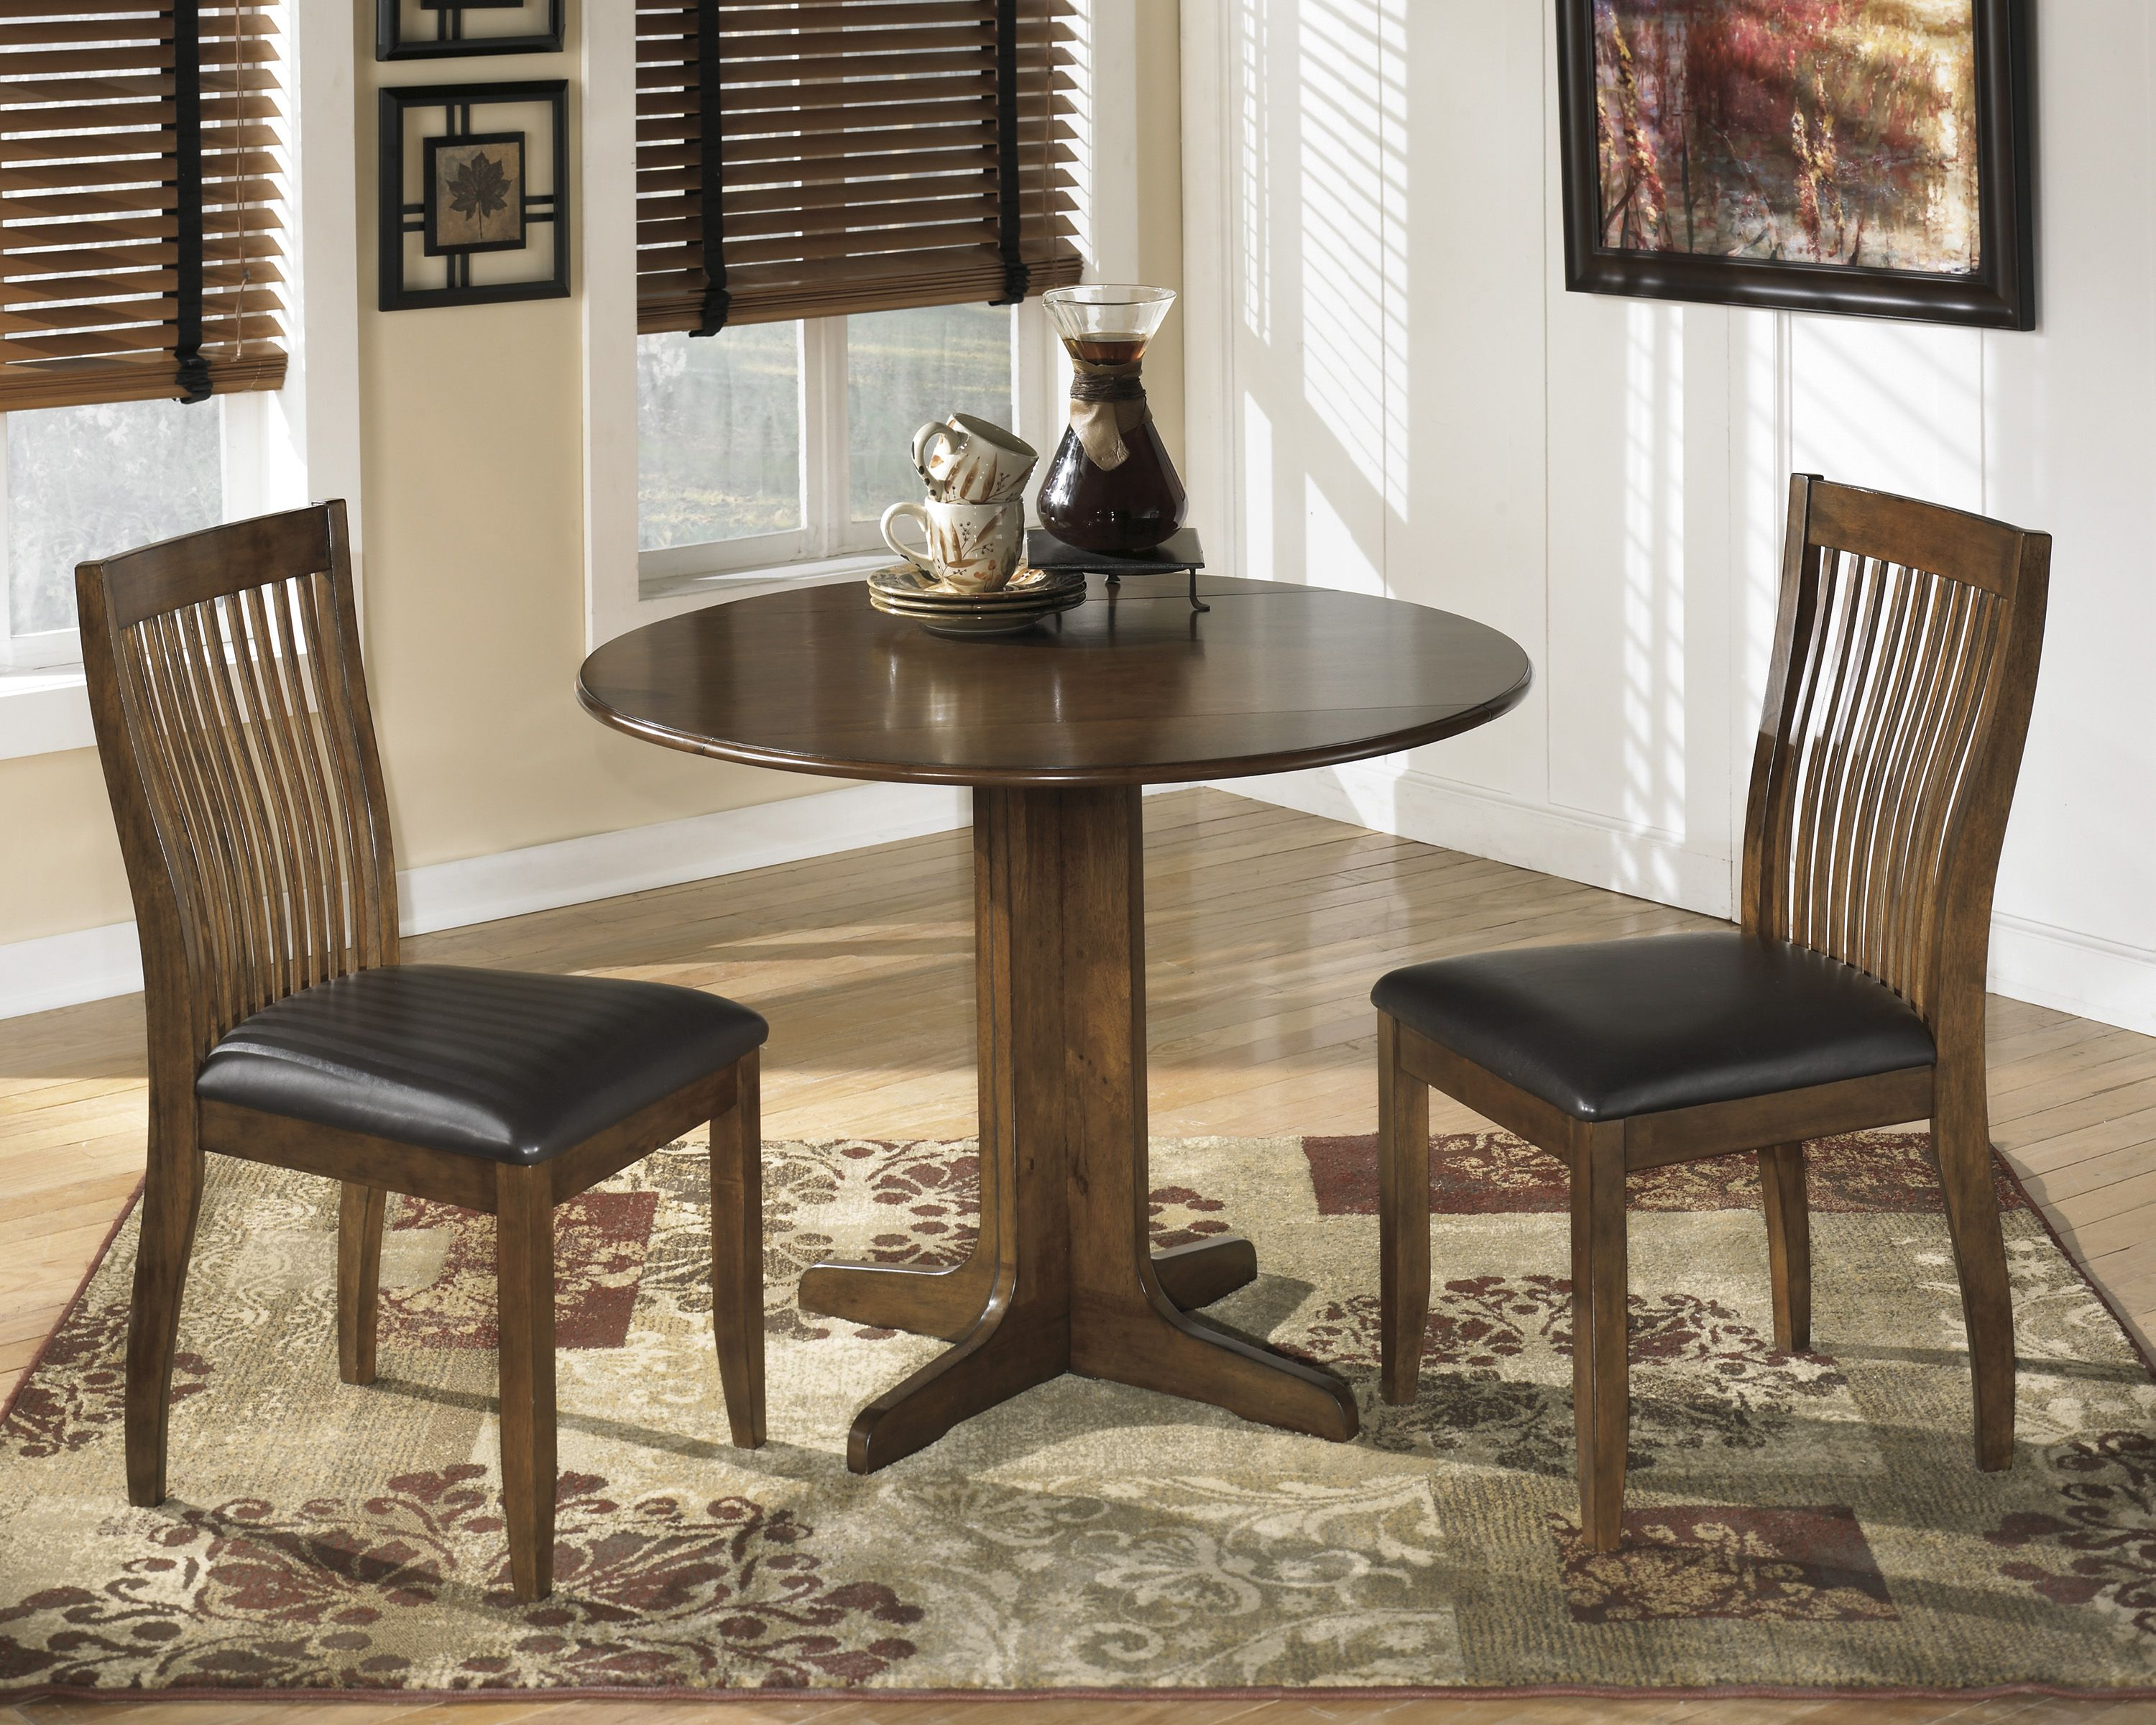 Surrey Dropleaf Pedestal Table By Ashley At Crowley Furniture In Kansas City